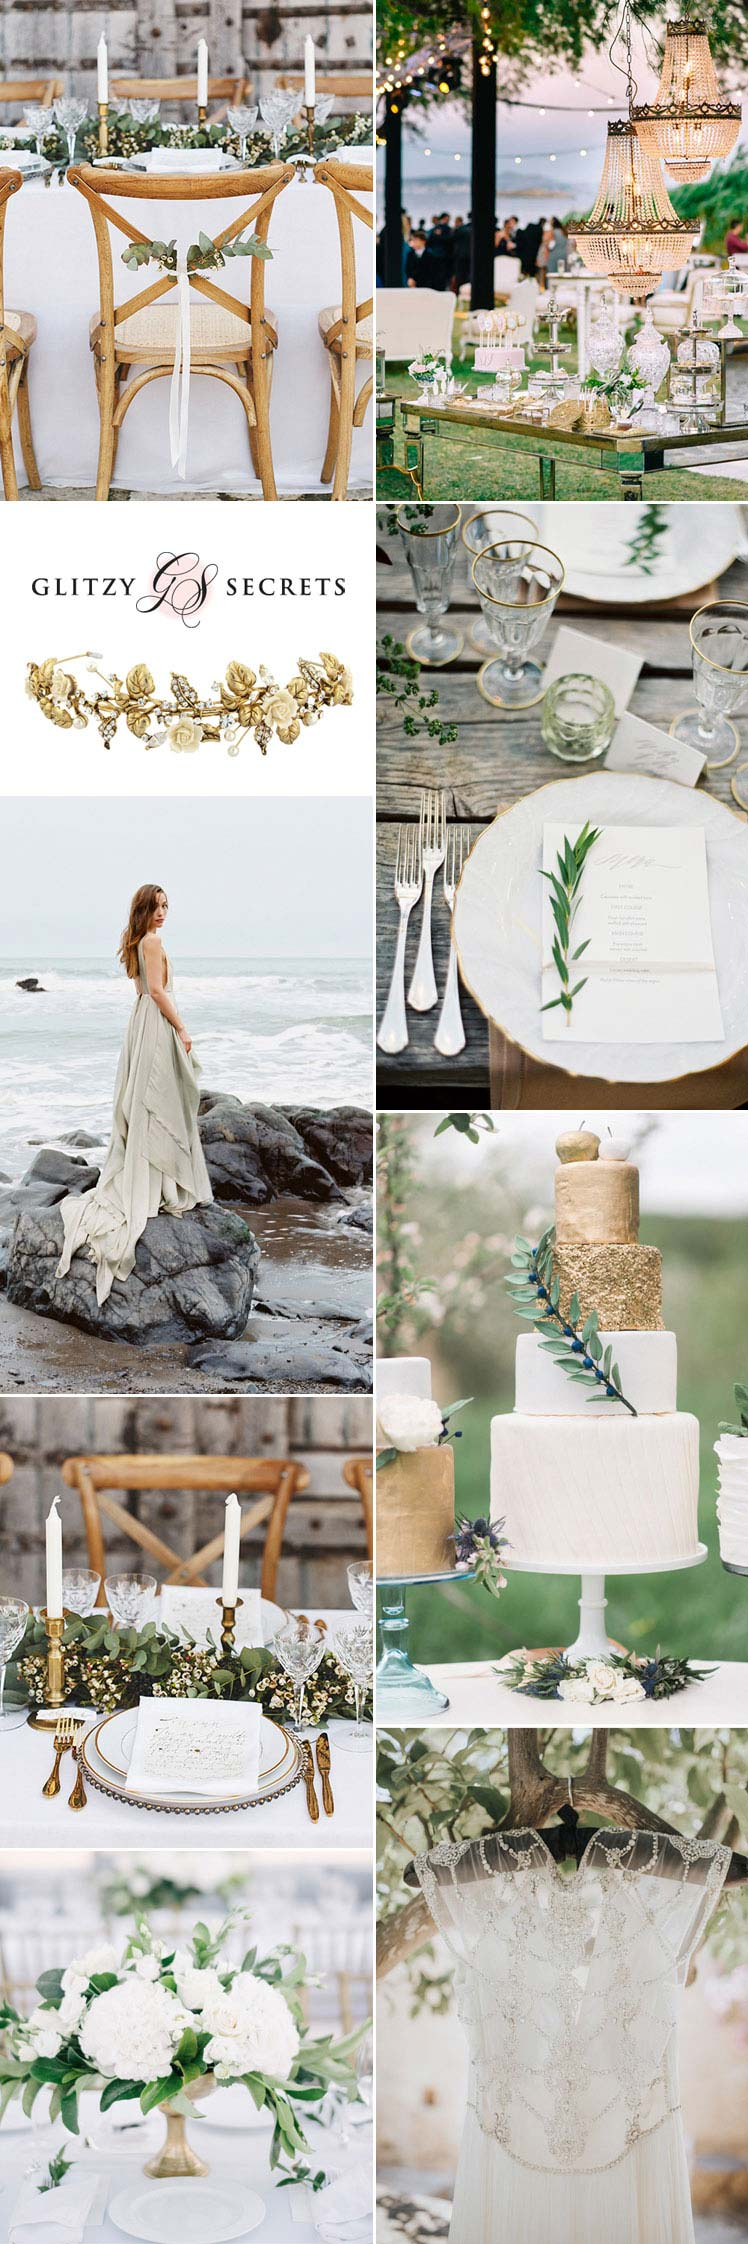 stylish Grecian wedding inspiration